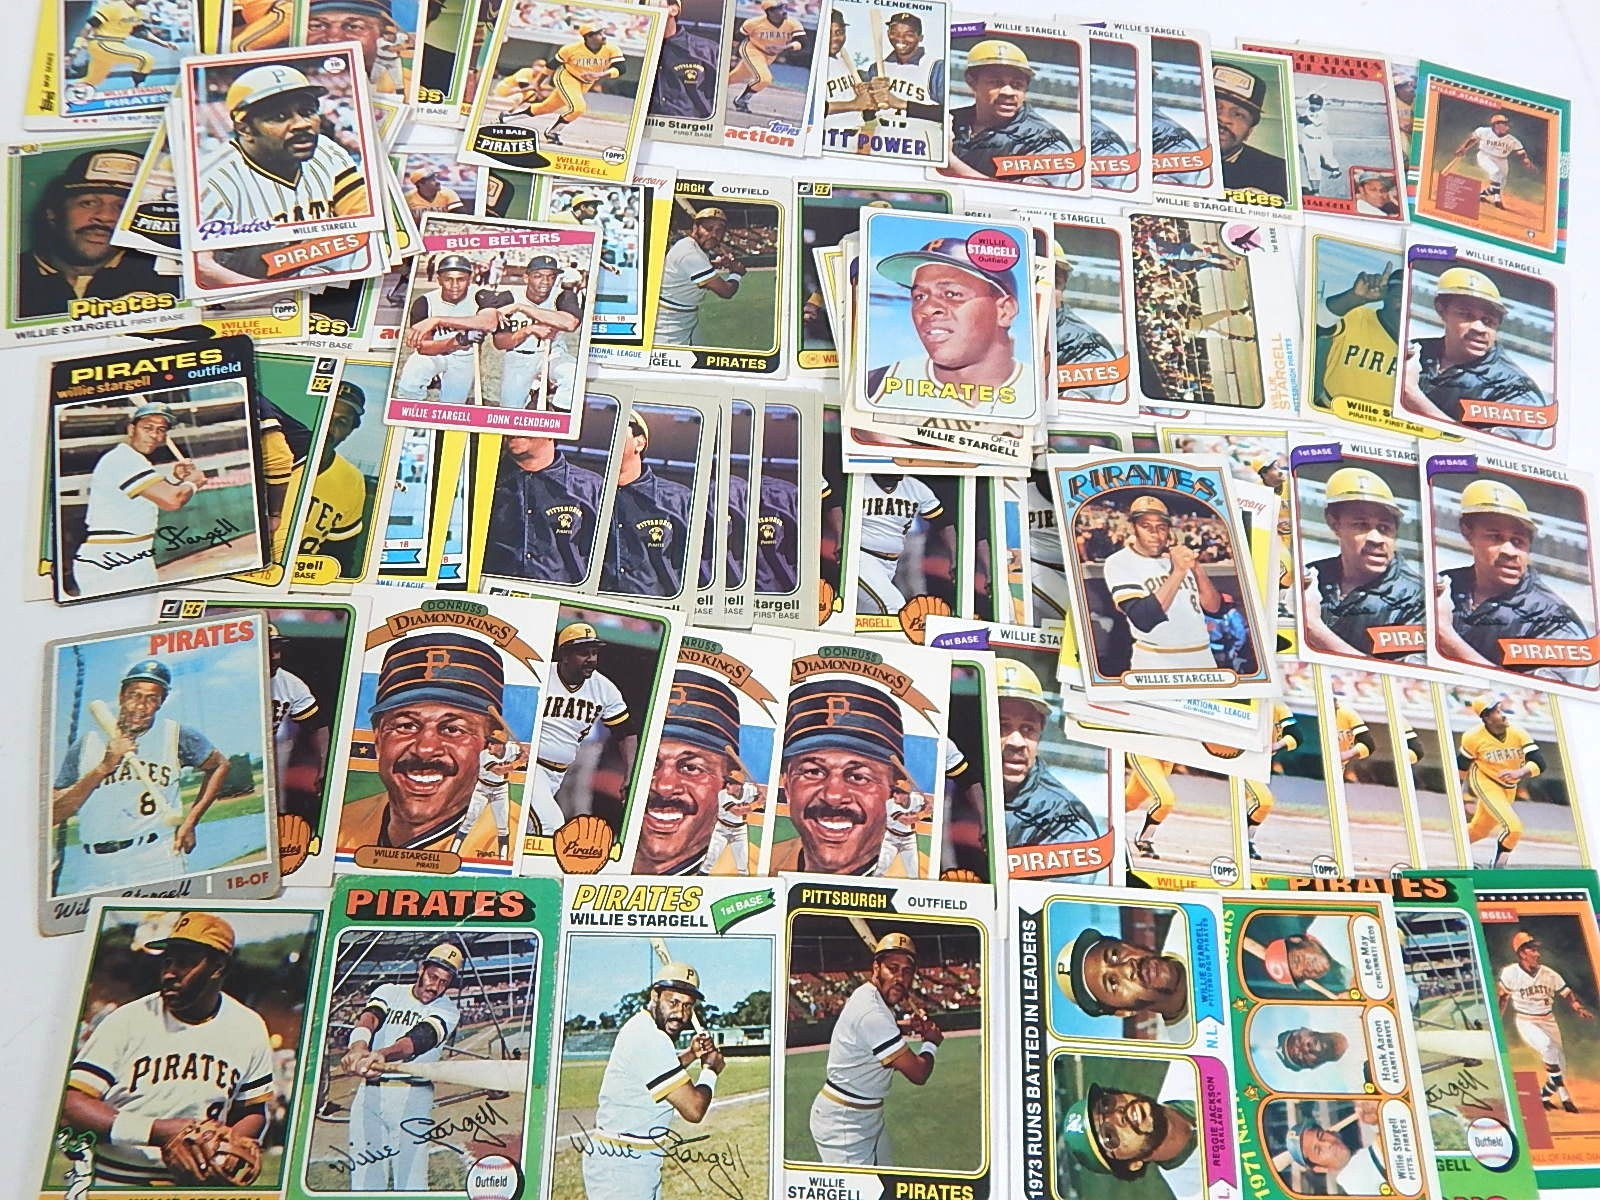 (HOF) Willie Stargell Pittsburgh Pirates Baseball Cards from 1966 to 1980s